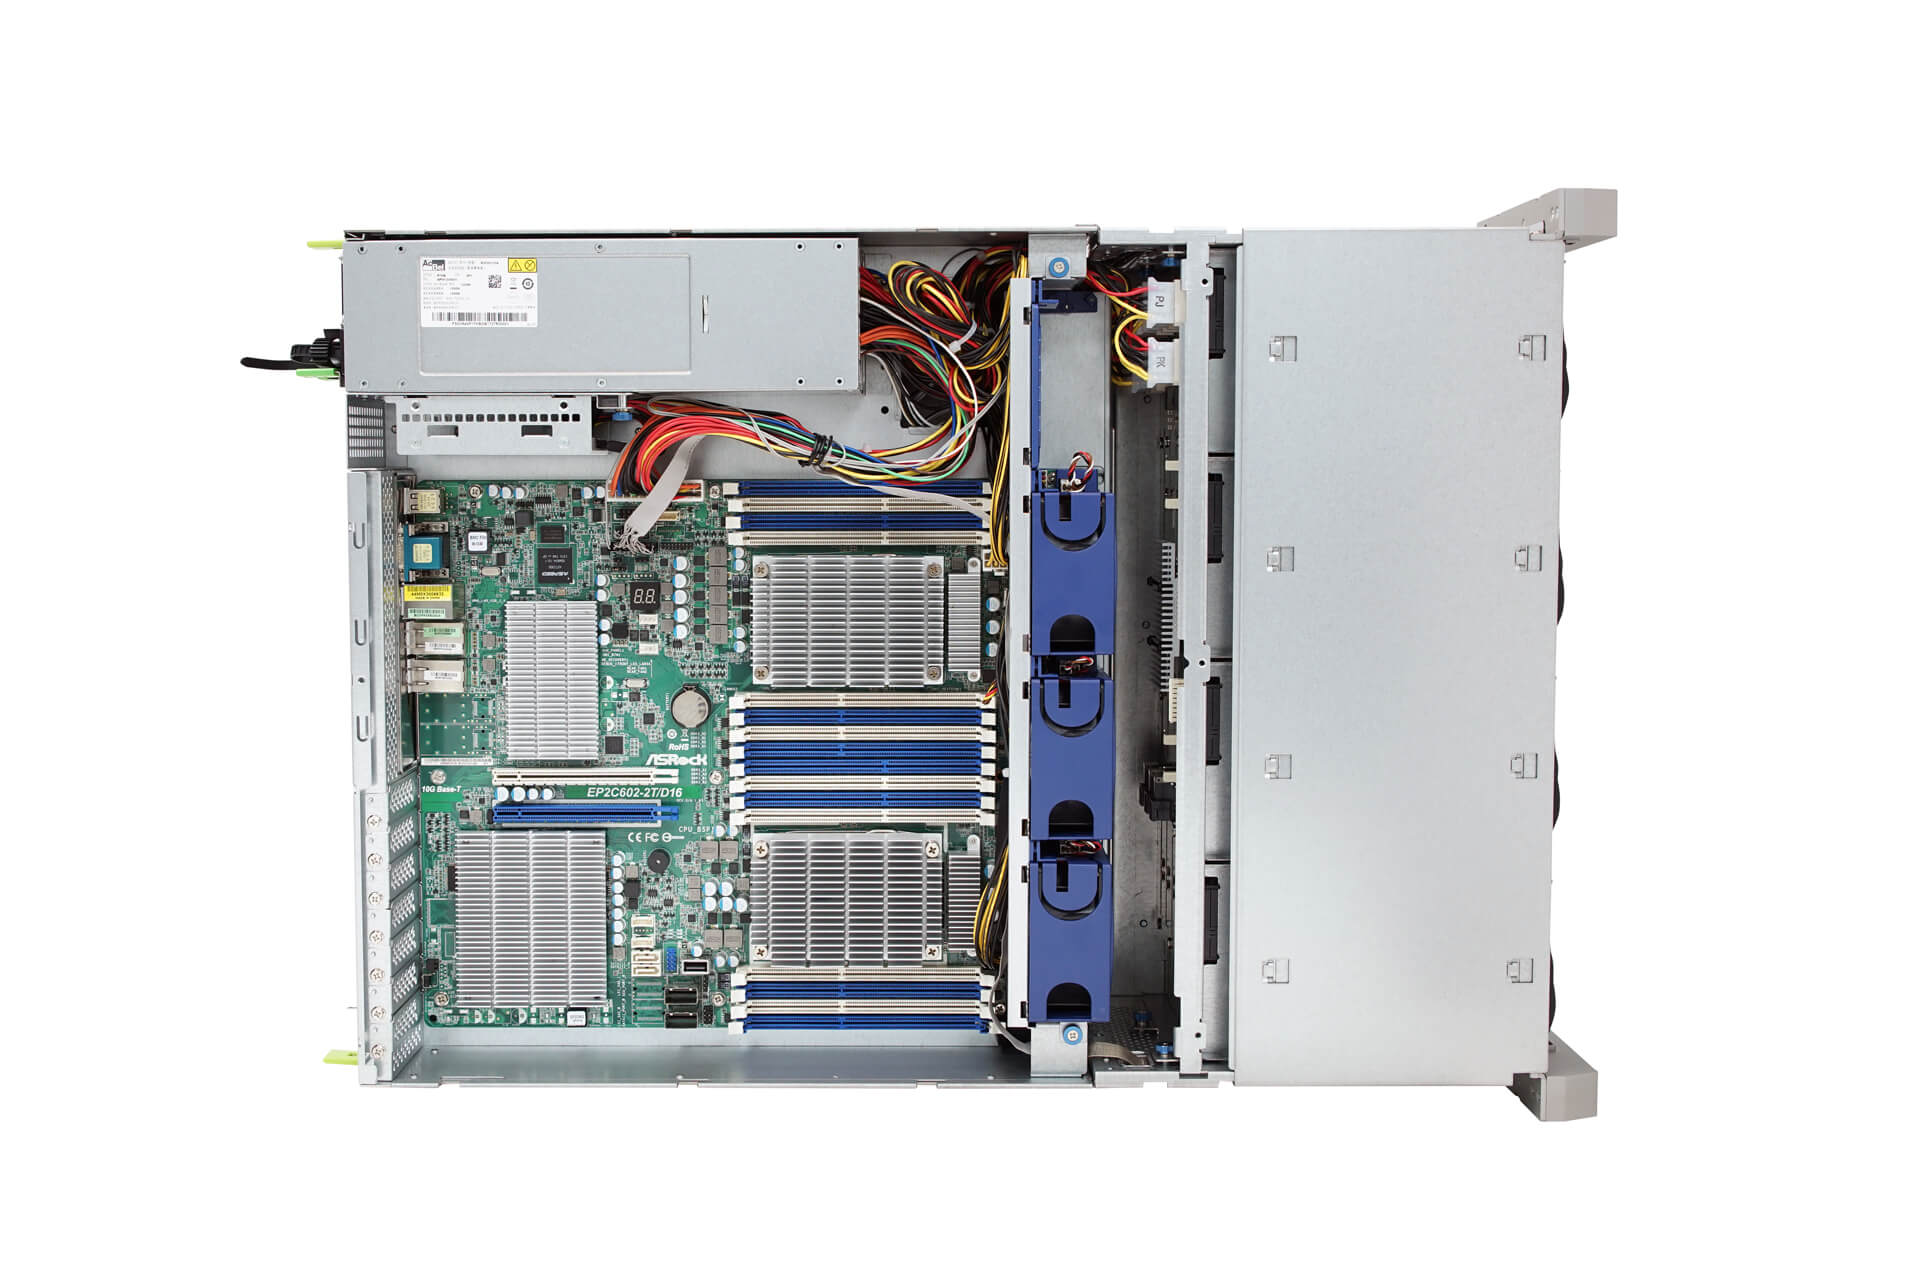 IW-RS436-02M - server system assembly